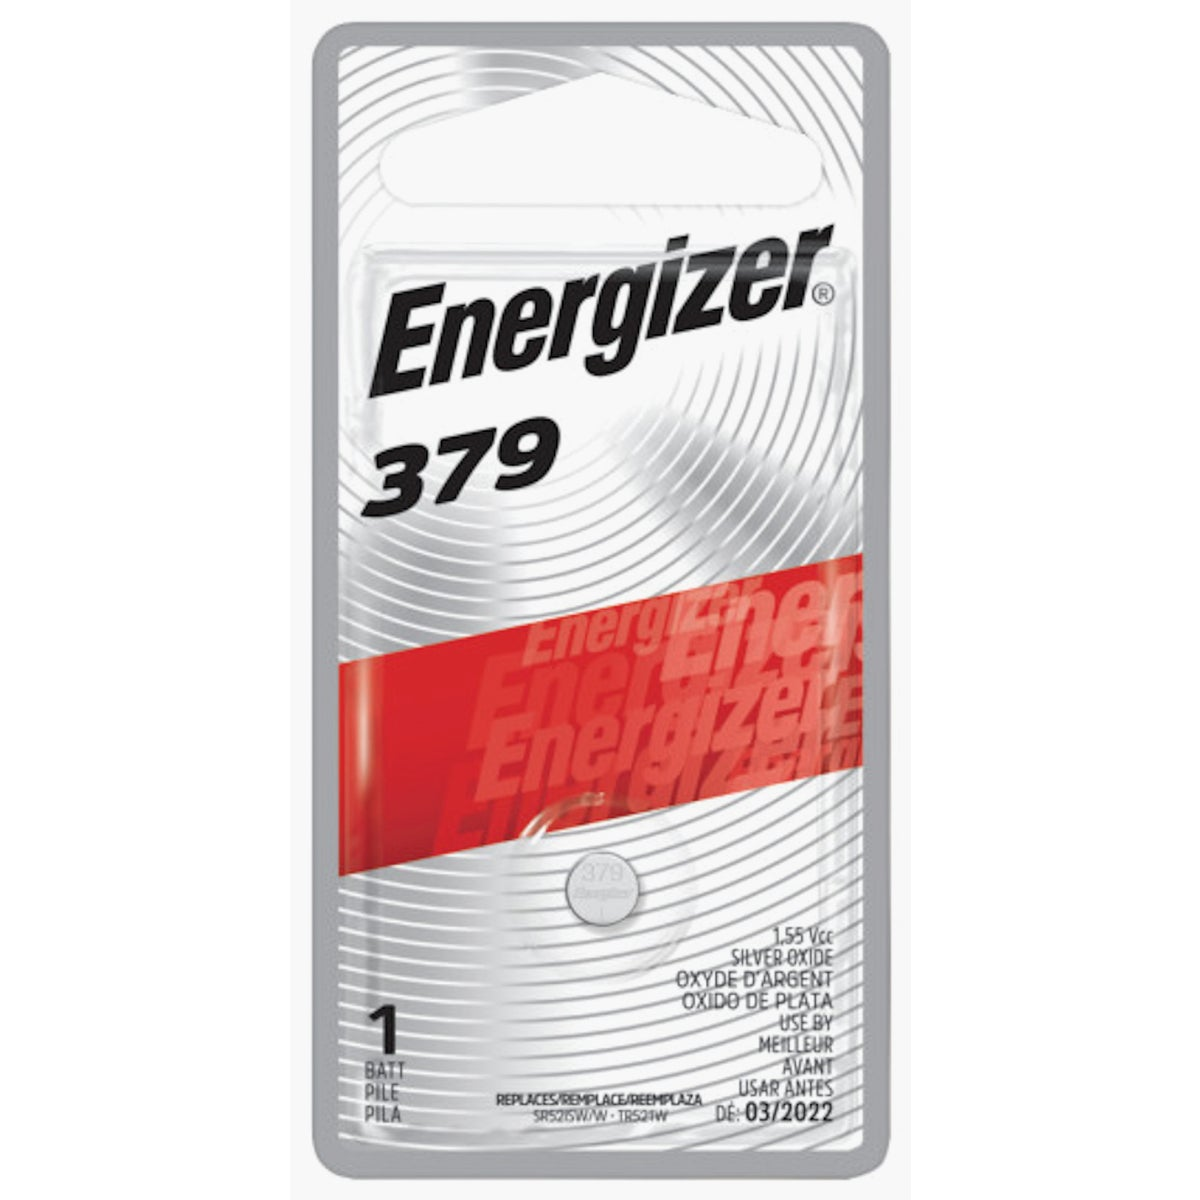 1.5V WATCH BATTERY - 379BPZ by Energizer